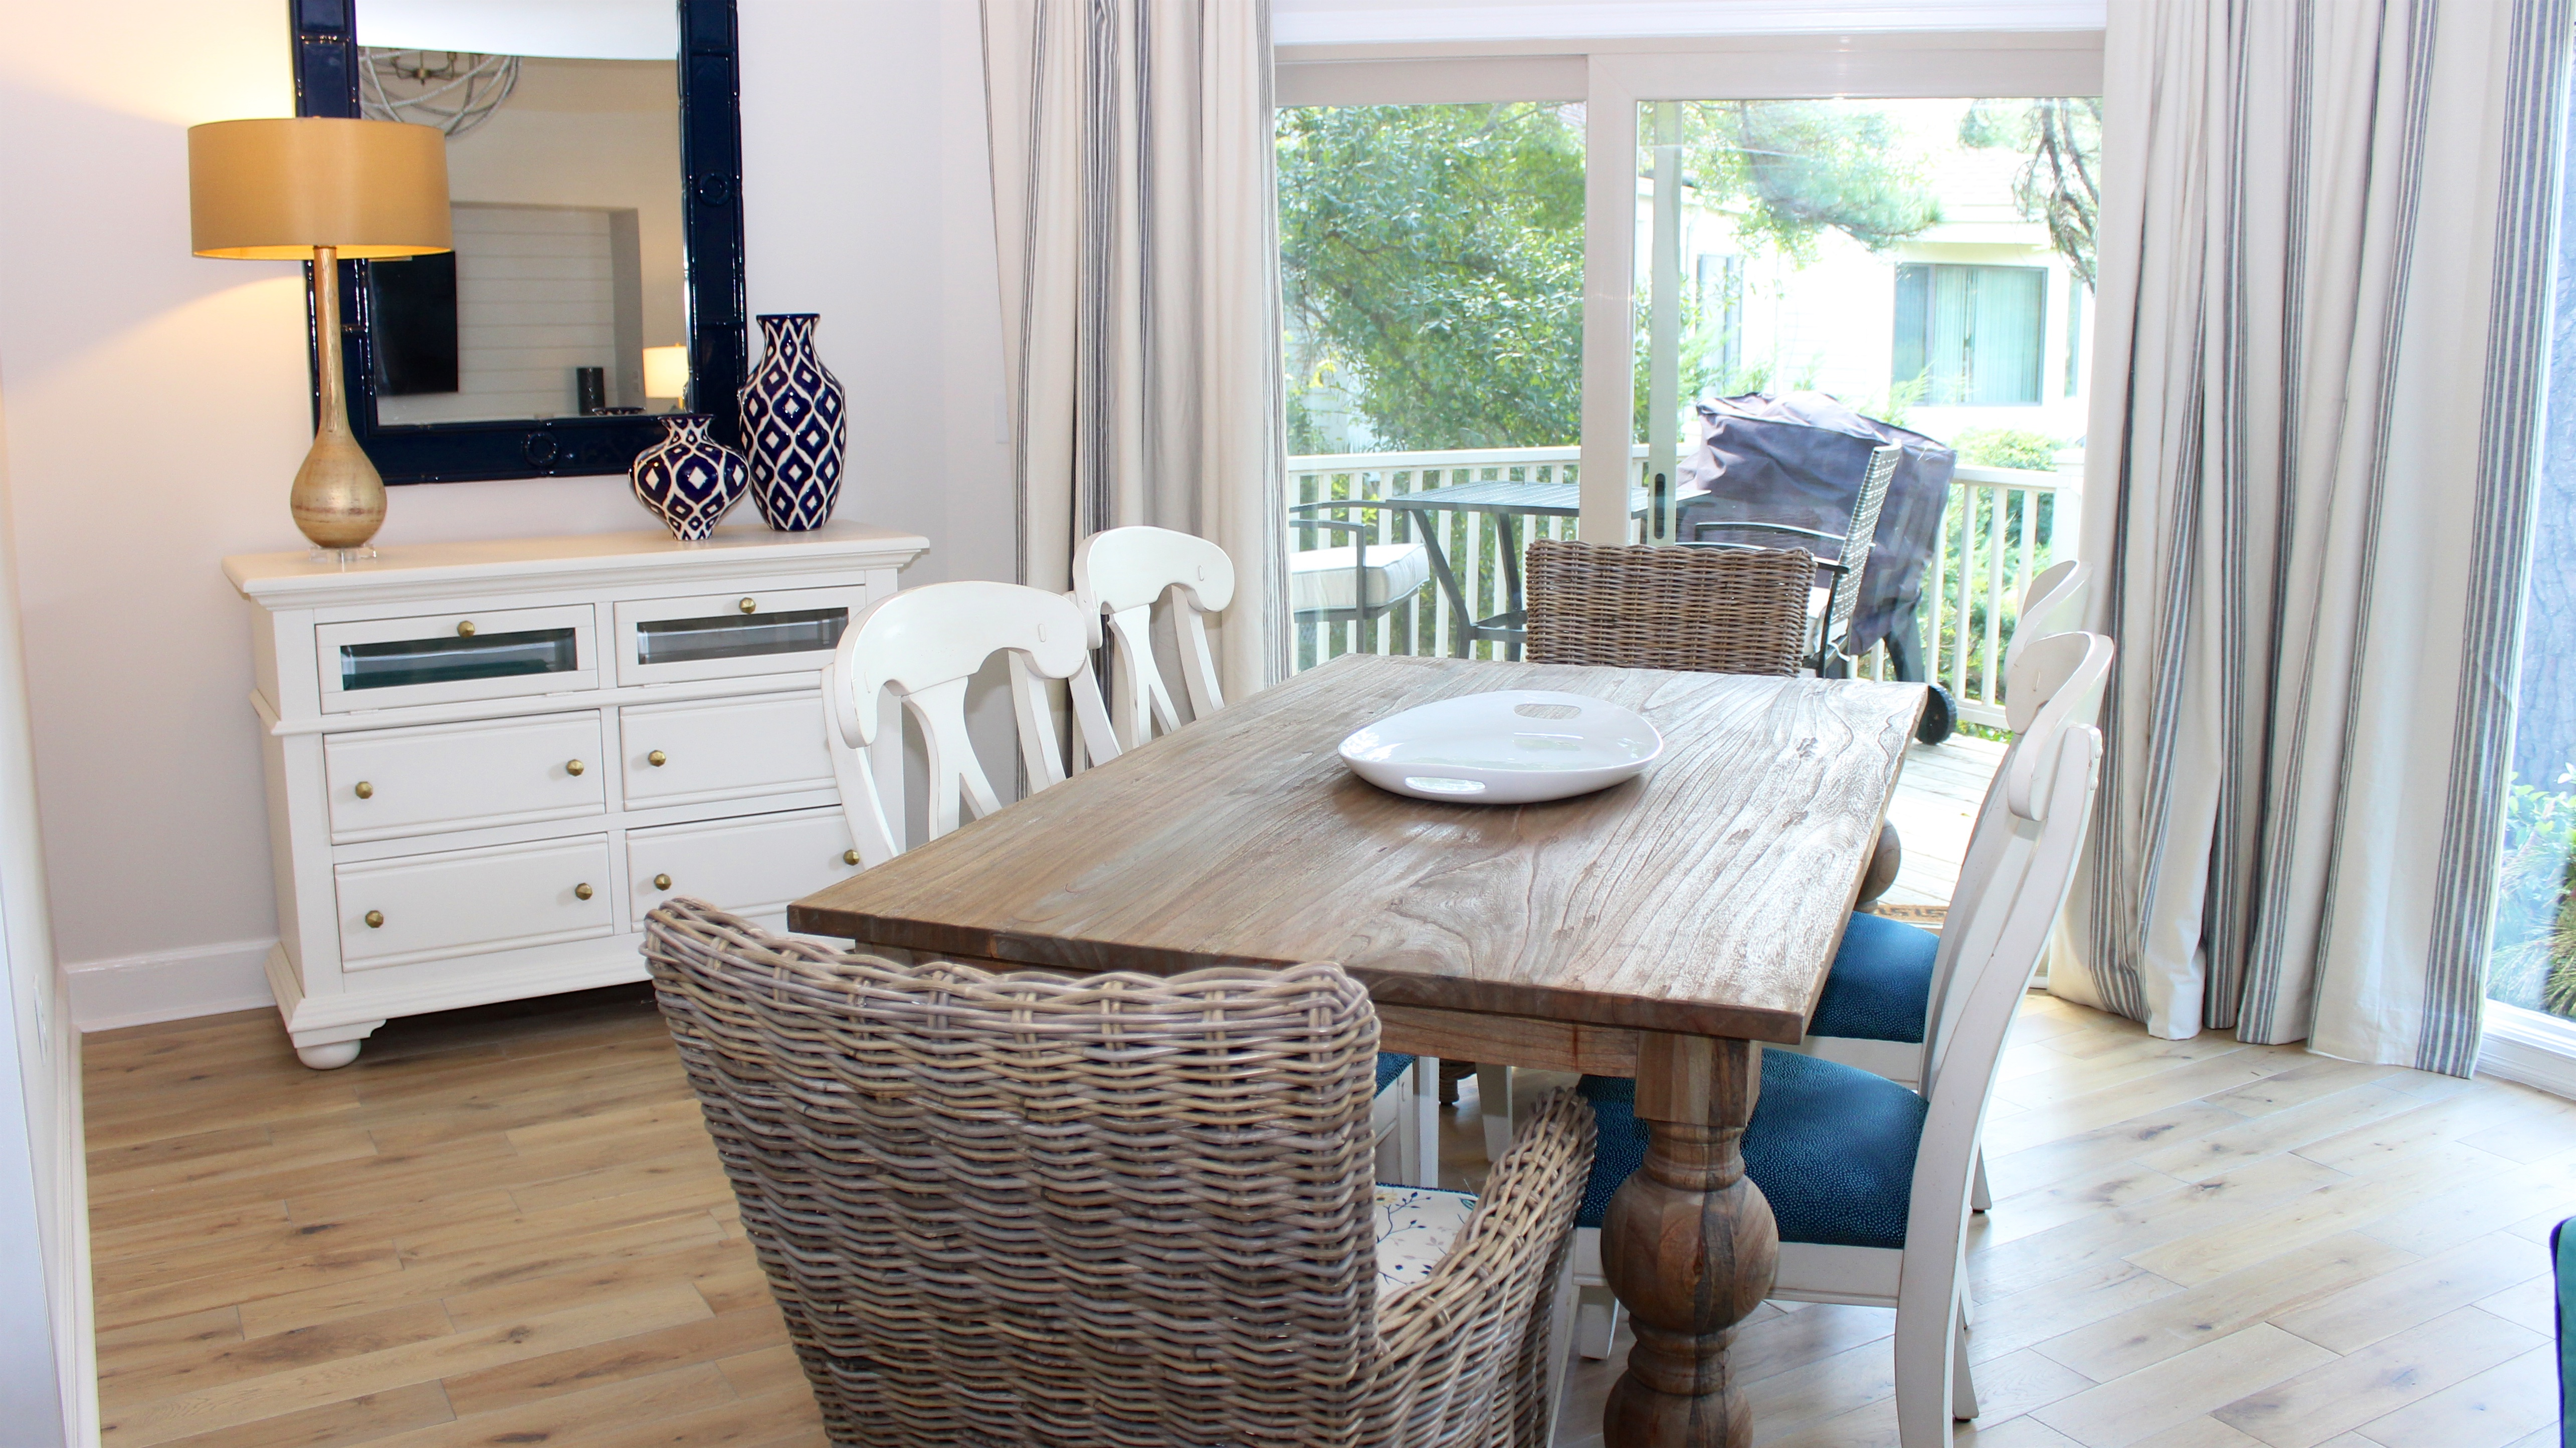 Enjoy sharing stories from your day while dining. Windows surround offering bright light.